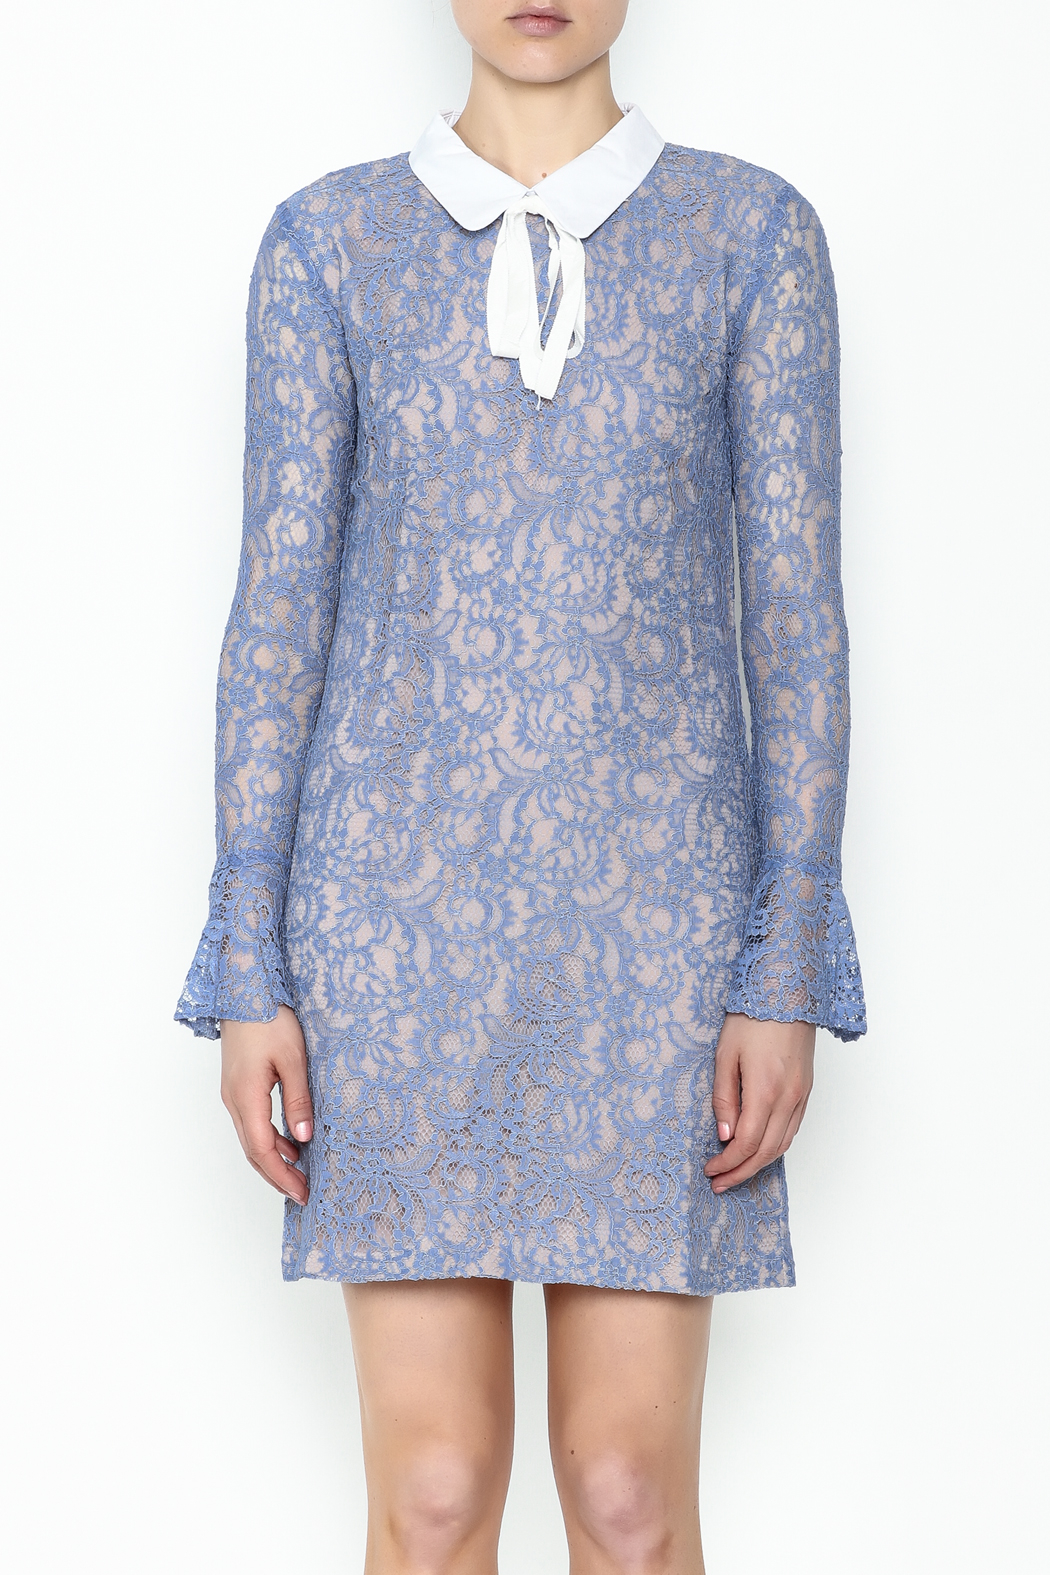 English Factory Collar Lace Bell Sleeve Dress - Front Full Image